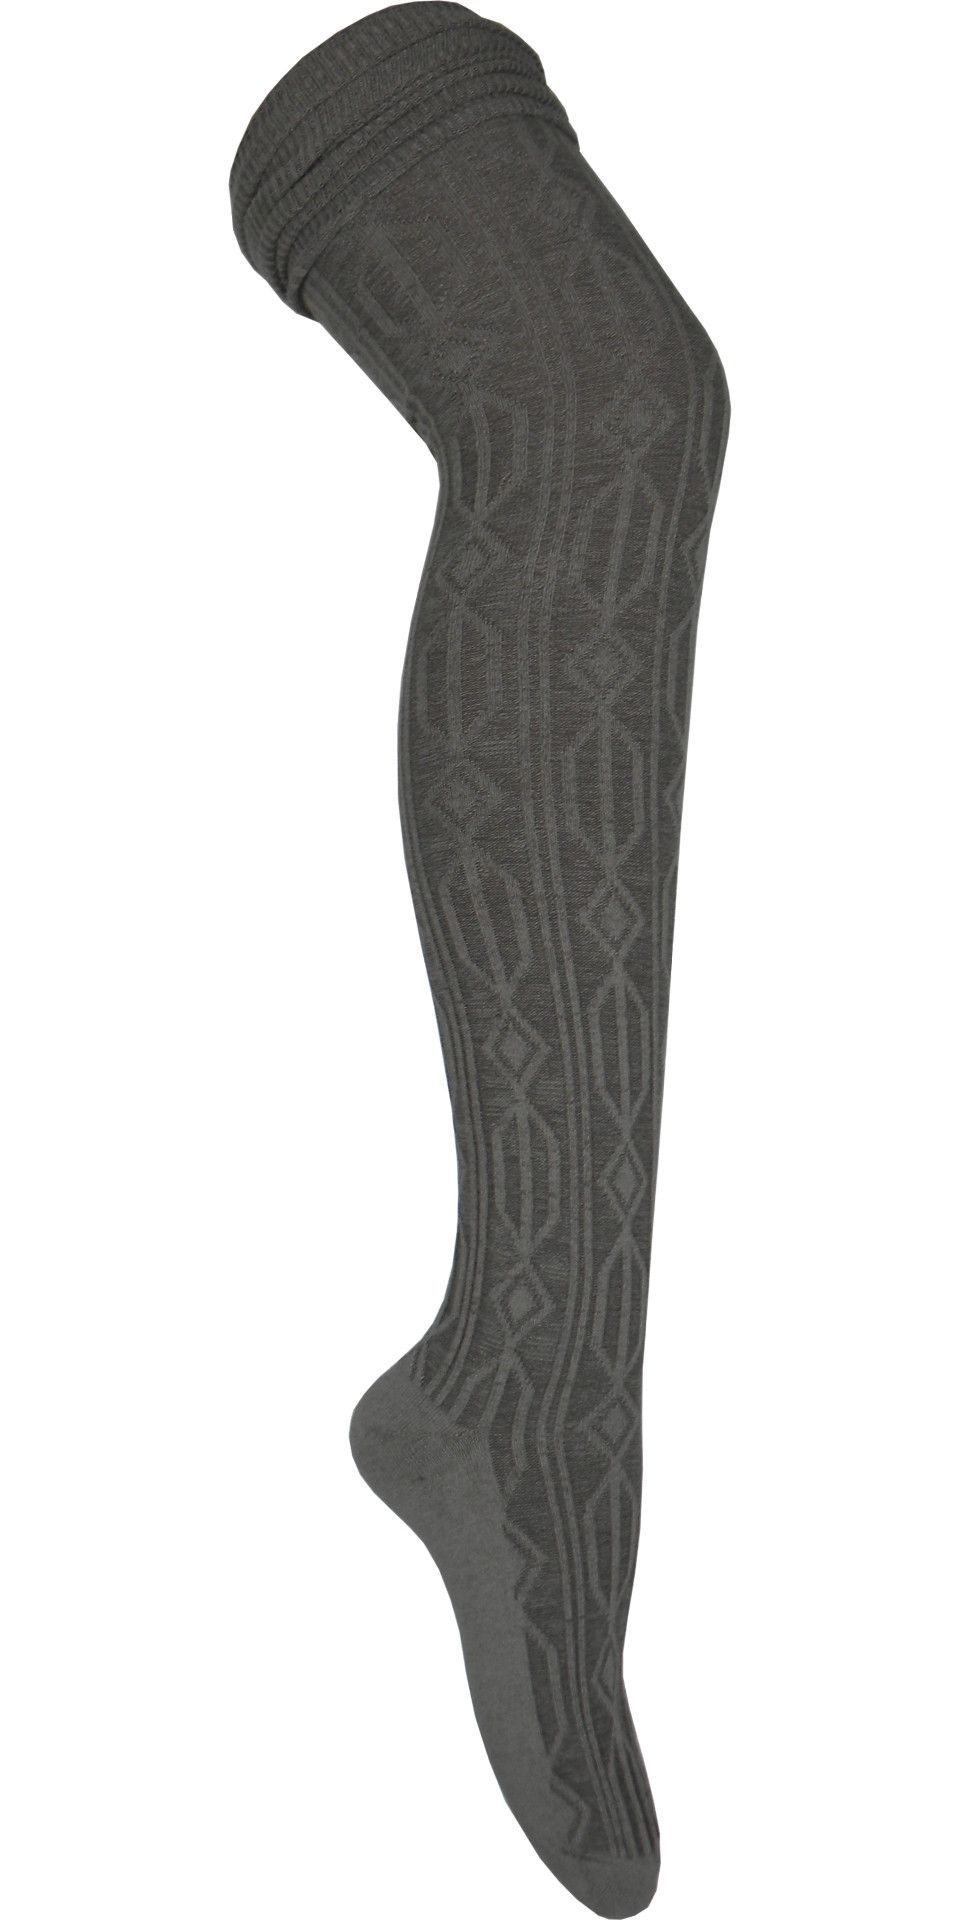 919659cf5 Product Details These warm gray over the knee socks have a cable knitting in  a diamond and hexagon pattern. These socks also have a rouched cuff perfect  for ...